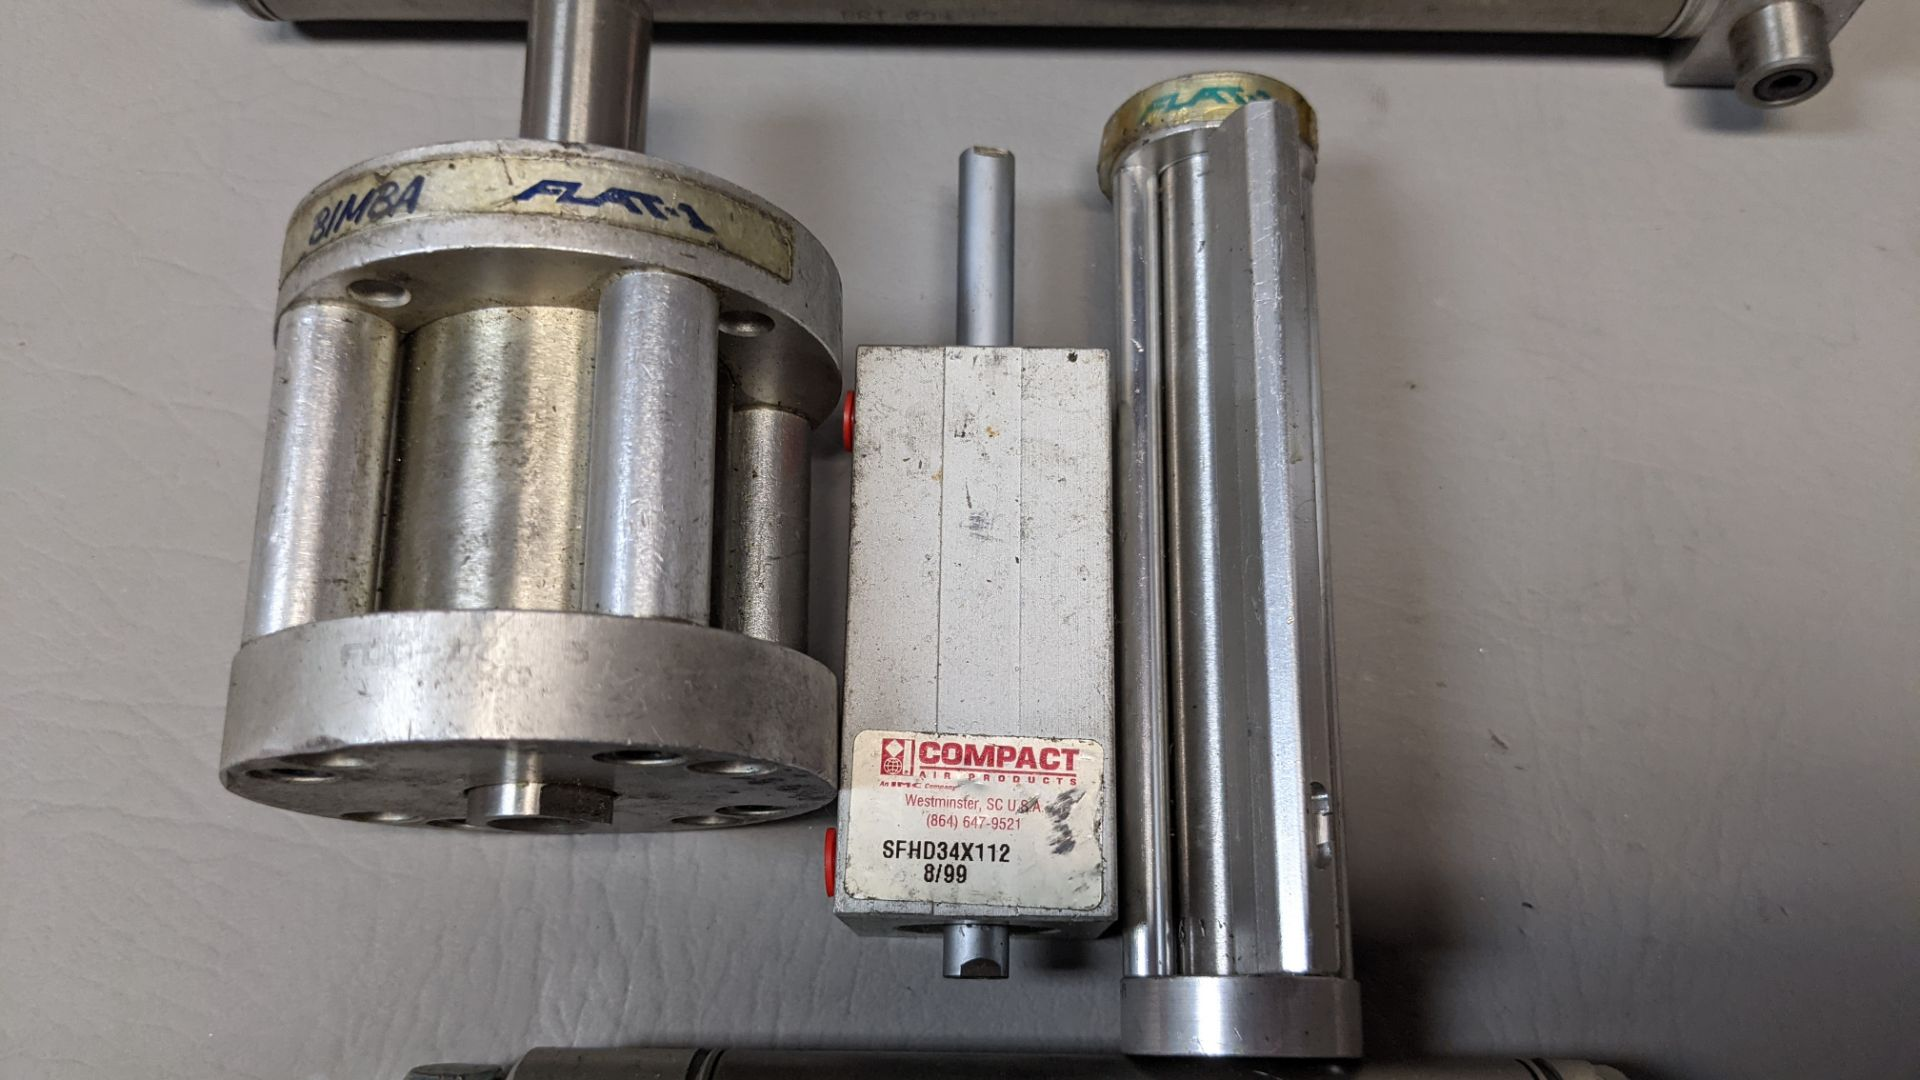 LOT OF PNEUMATIC CYLINDERS - Image 3 of 4